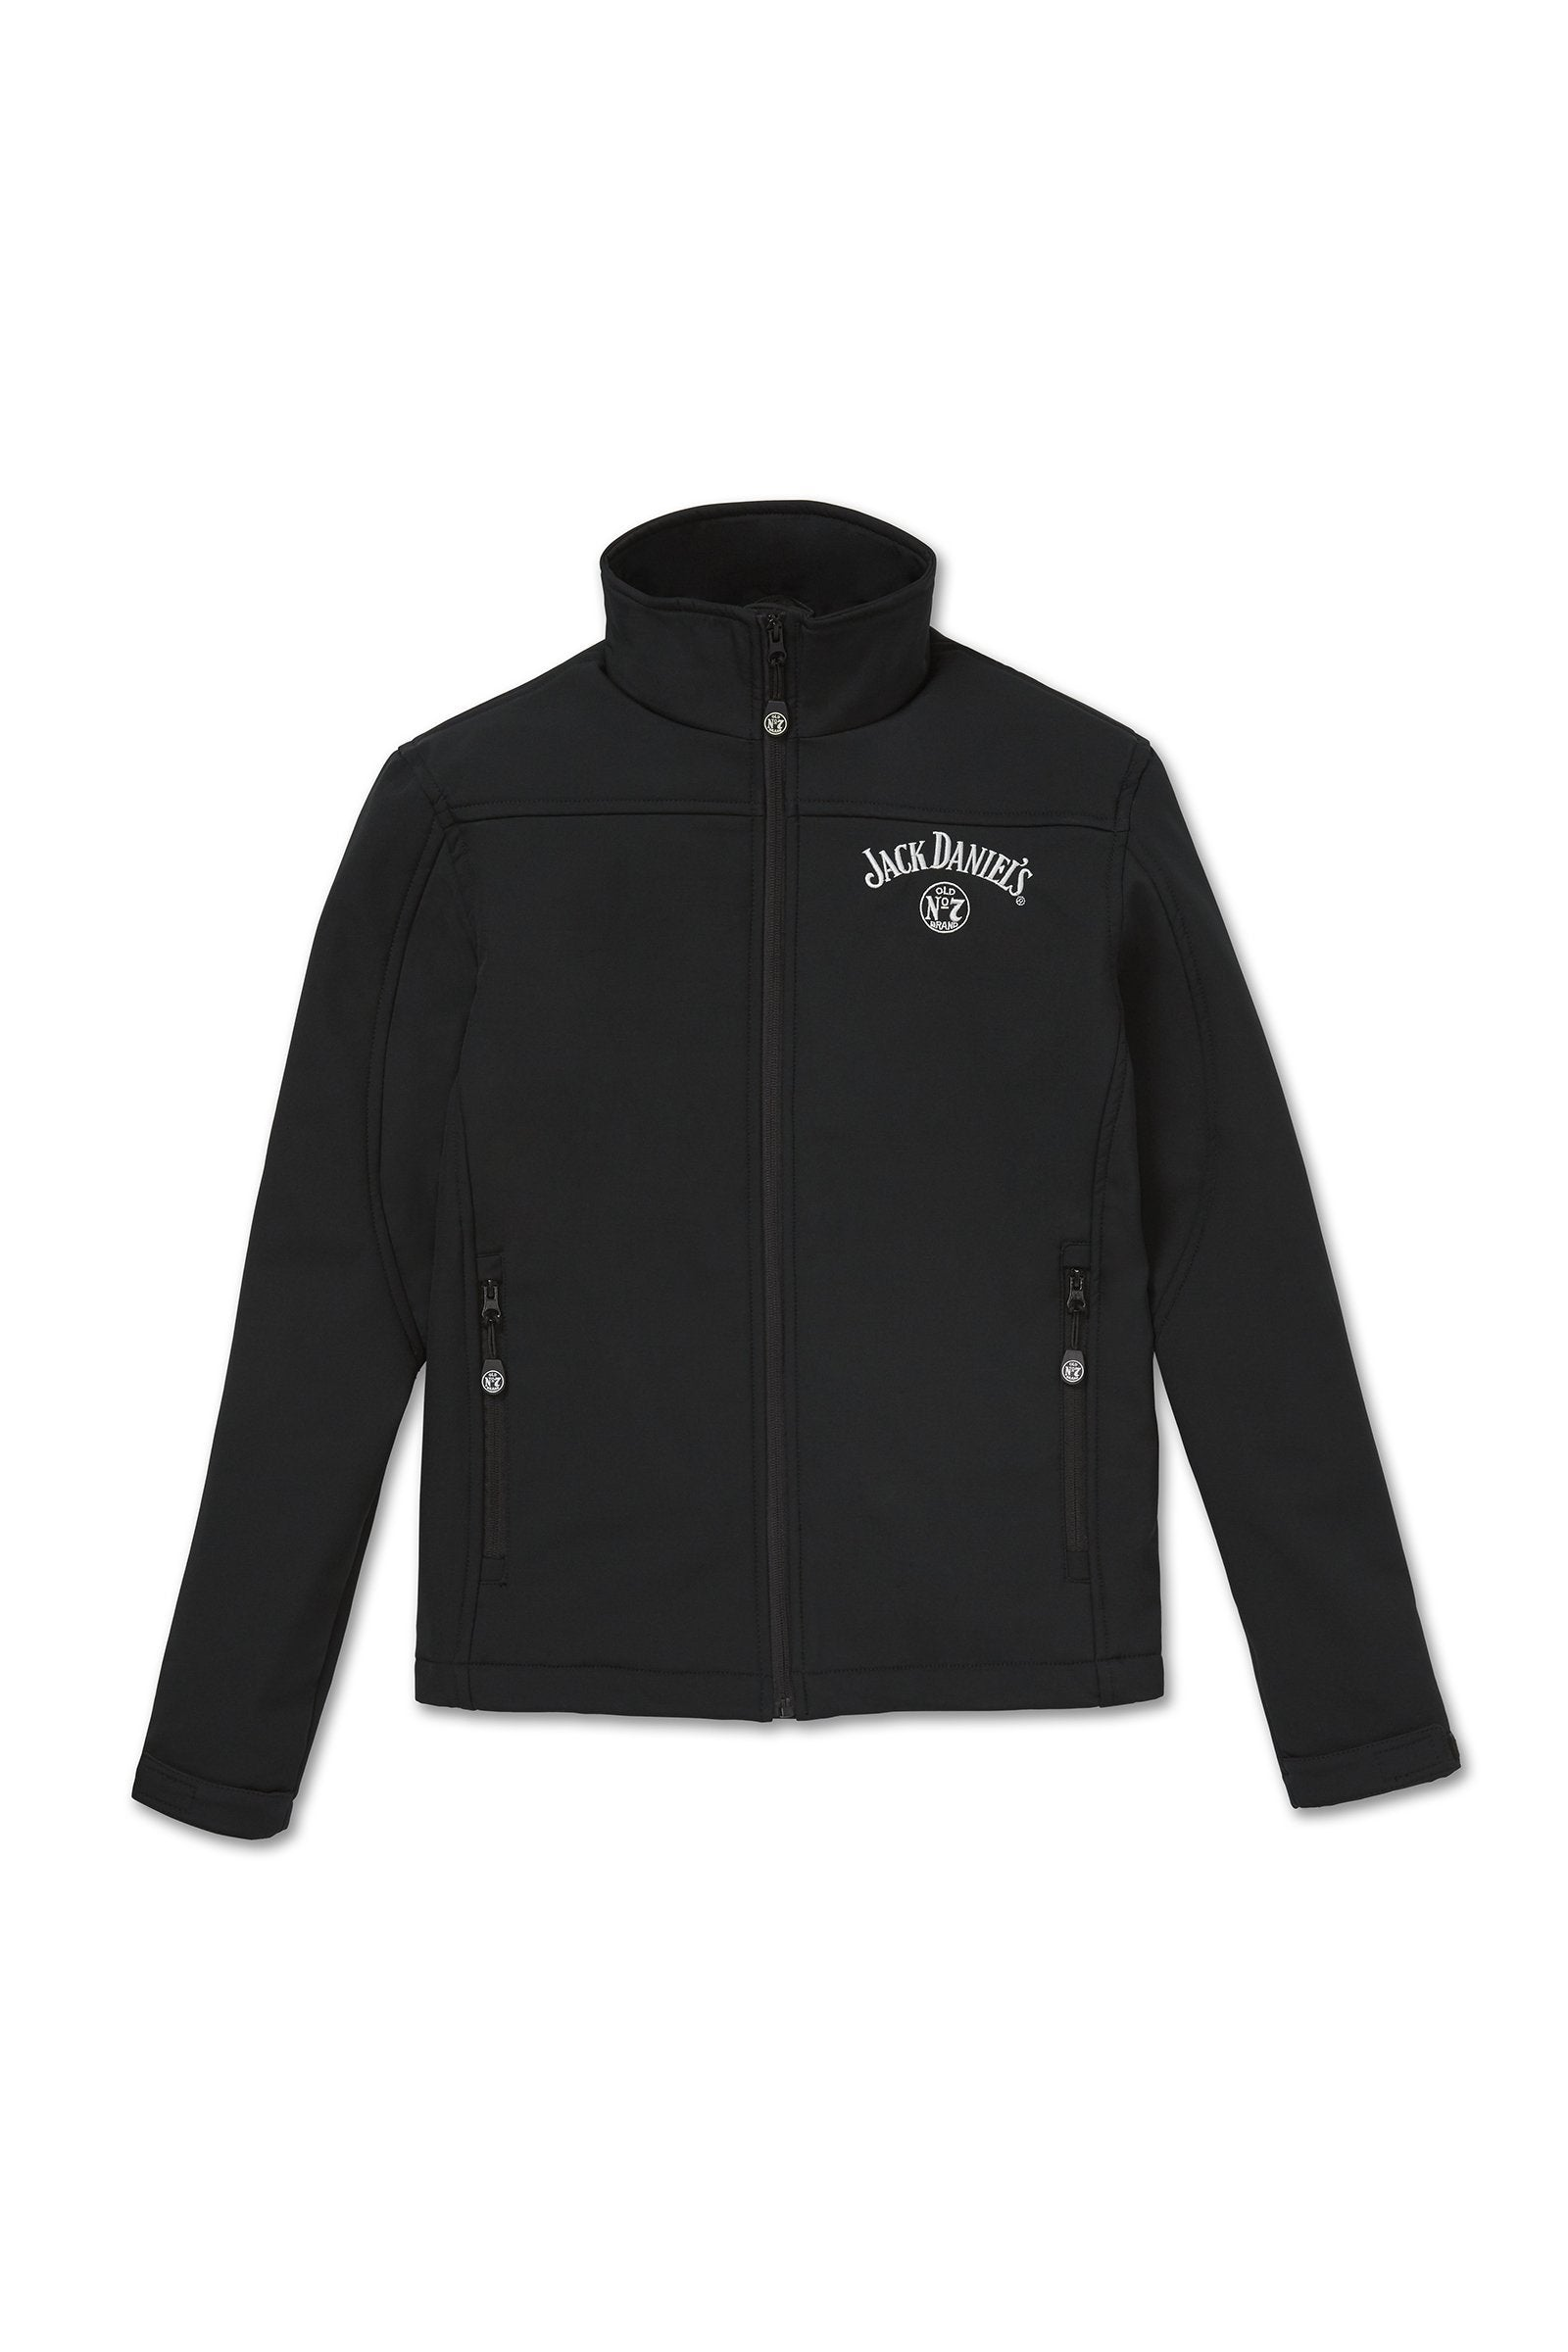 Ely & Walker Men's Softshell Jack Daniels Jacket